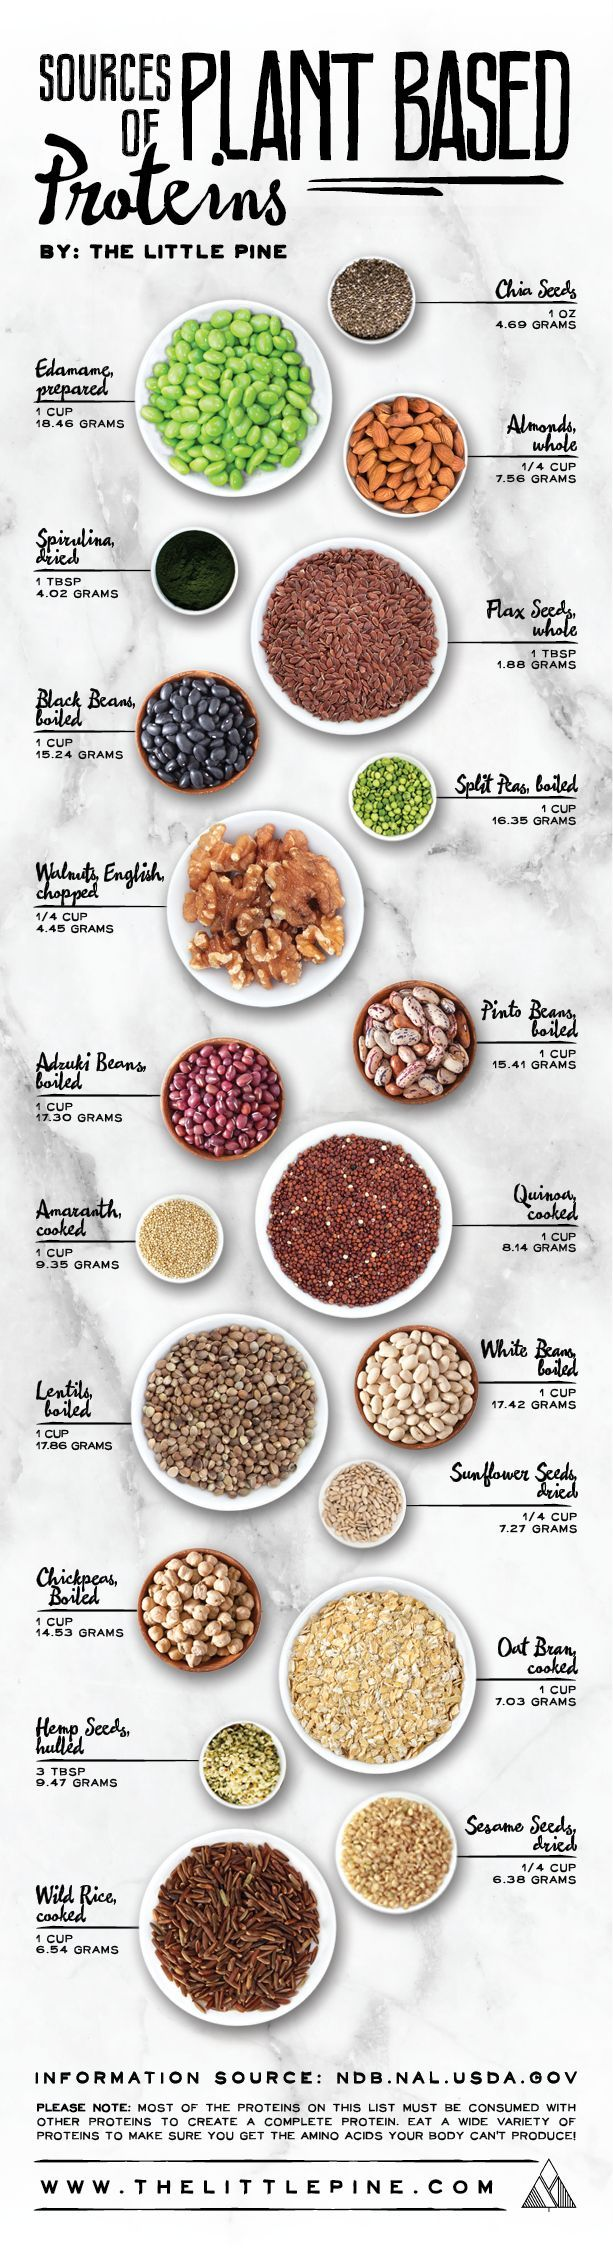 getting protein through a whole plant diet